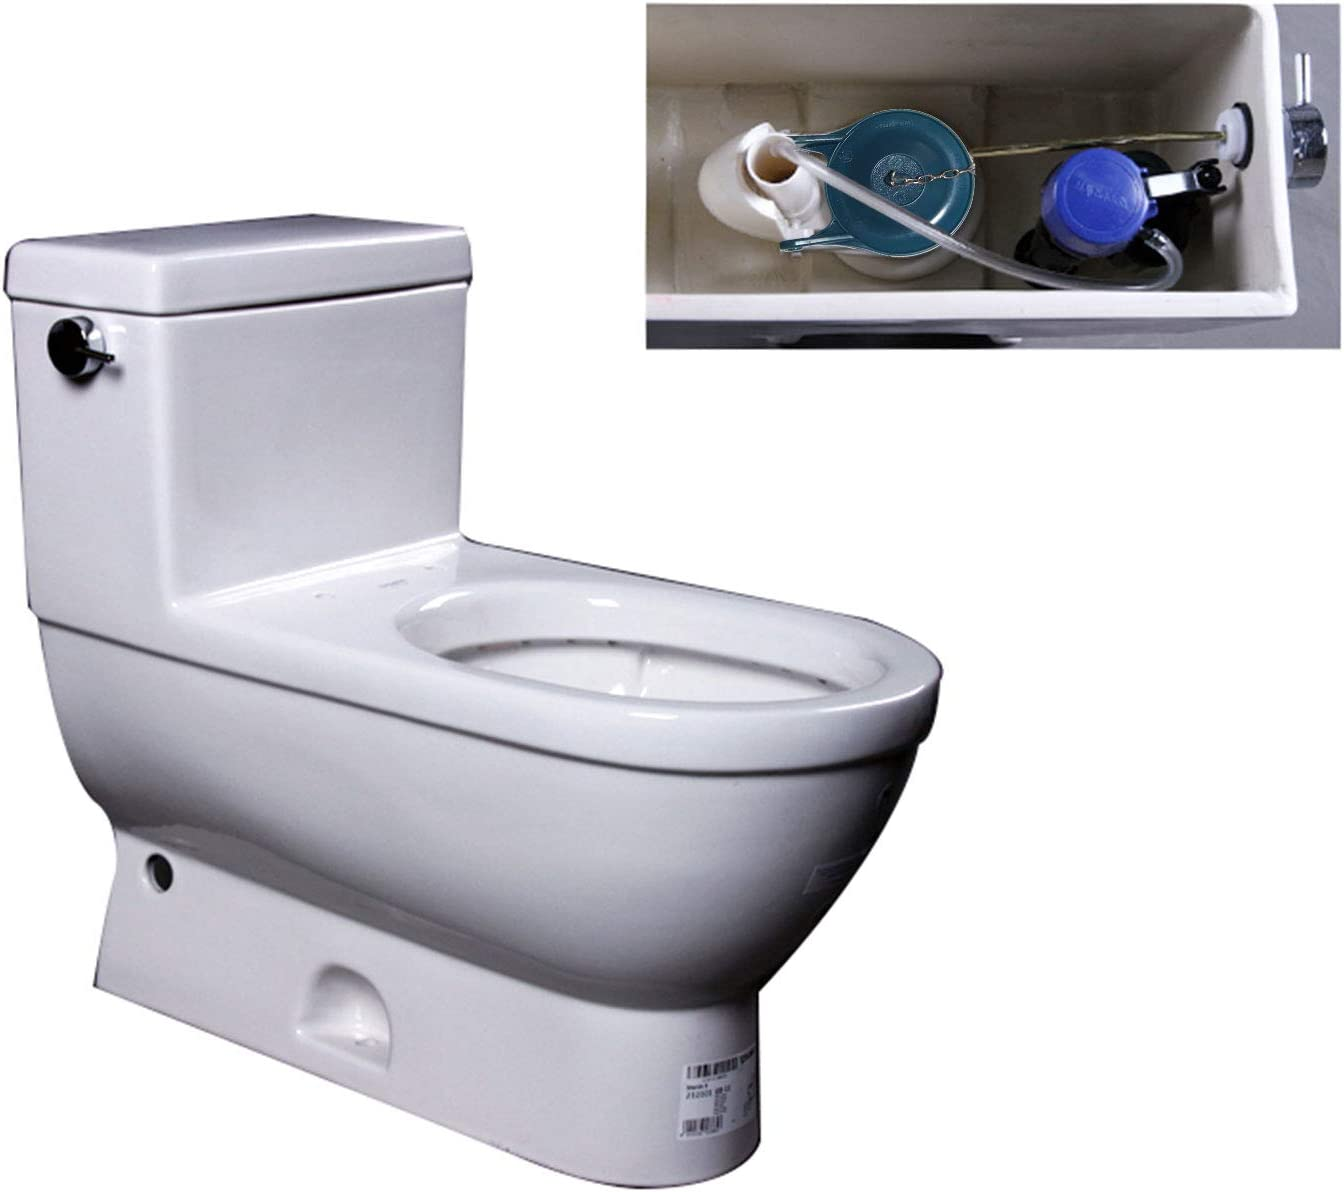 Water Saving 2 Pack Toilet Flapper Replacement Easy to Install 3 Inch Blue Flapper Replacement Compatible with Gerber 99-788 Long Lasting Rubber